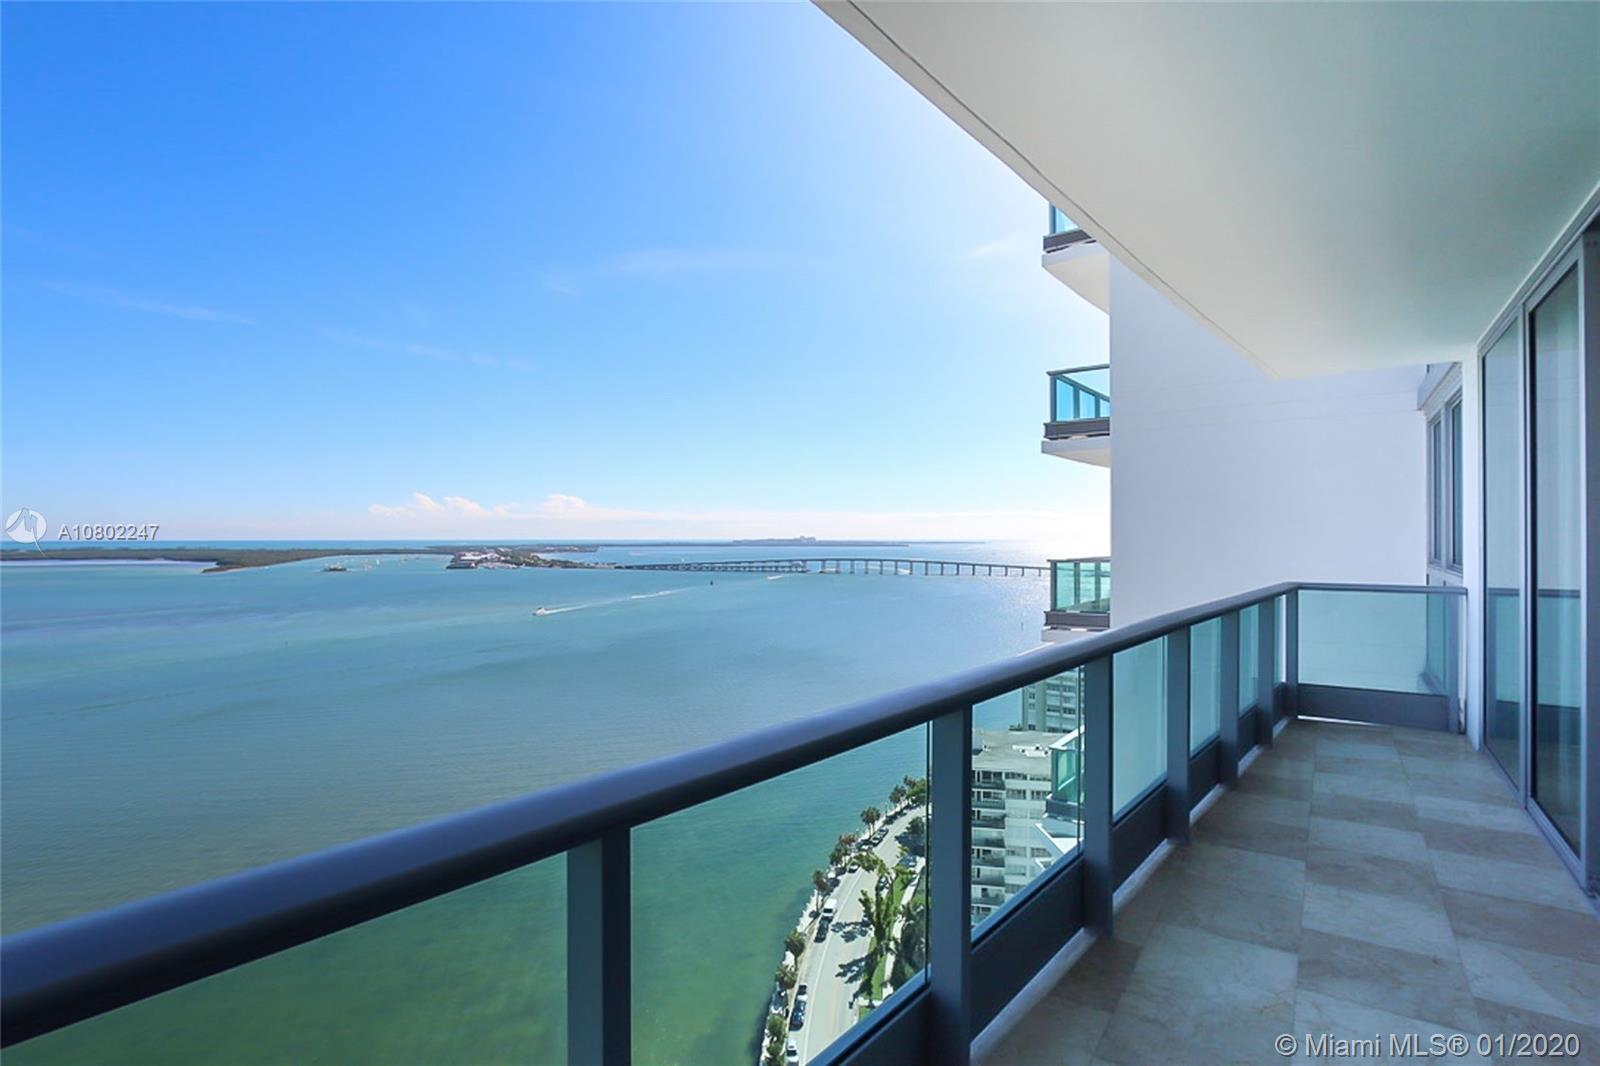 IMPECCABLE UNIT AT sought after JADE RESIDENCES. Large 2 BED + DEN with expansive balcony with breathtaking views to the bay. Extremely private unit . Building offers 5 Star amenities, infinity edge pool, full gym w/spa facilities. Best location on Brickell. Well Managed Bldg. Must see!